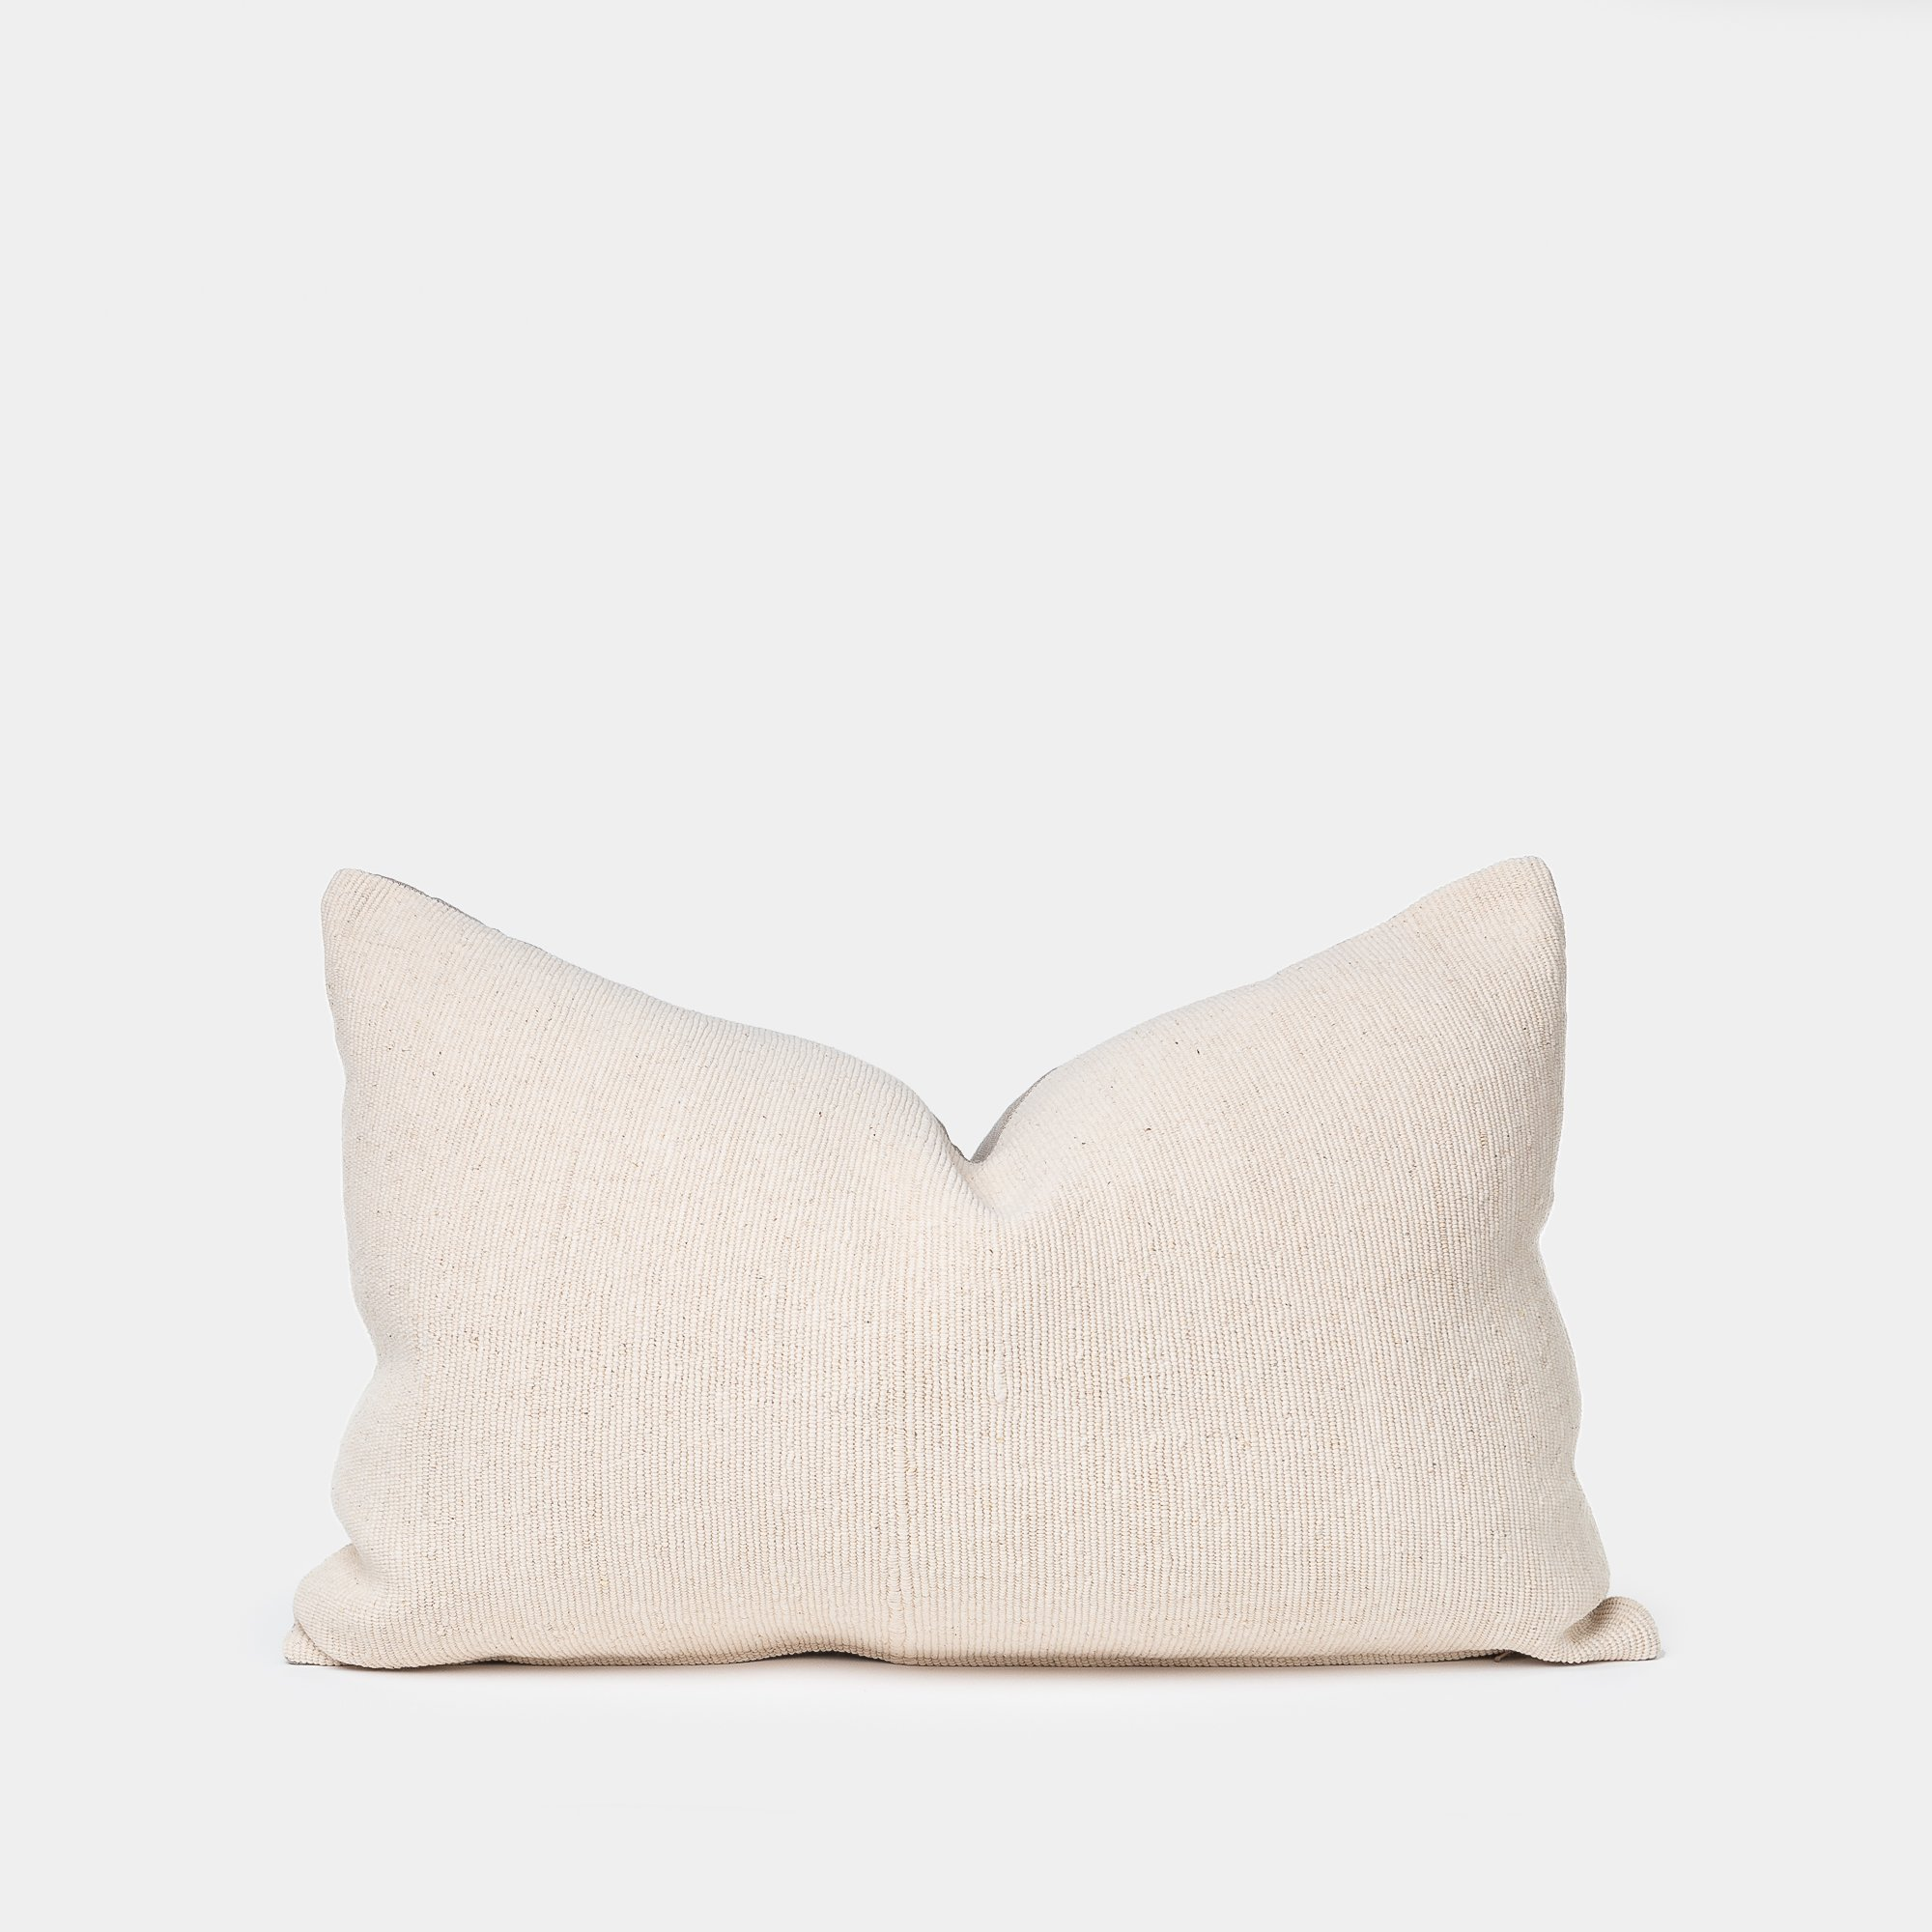 ALL-SORTS-OF-SHOPPE-ALMA-PILLOW